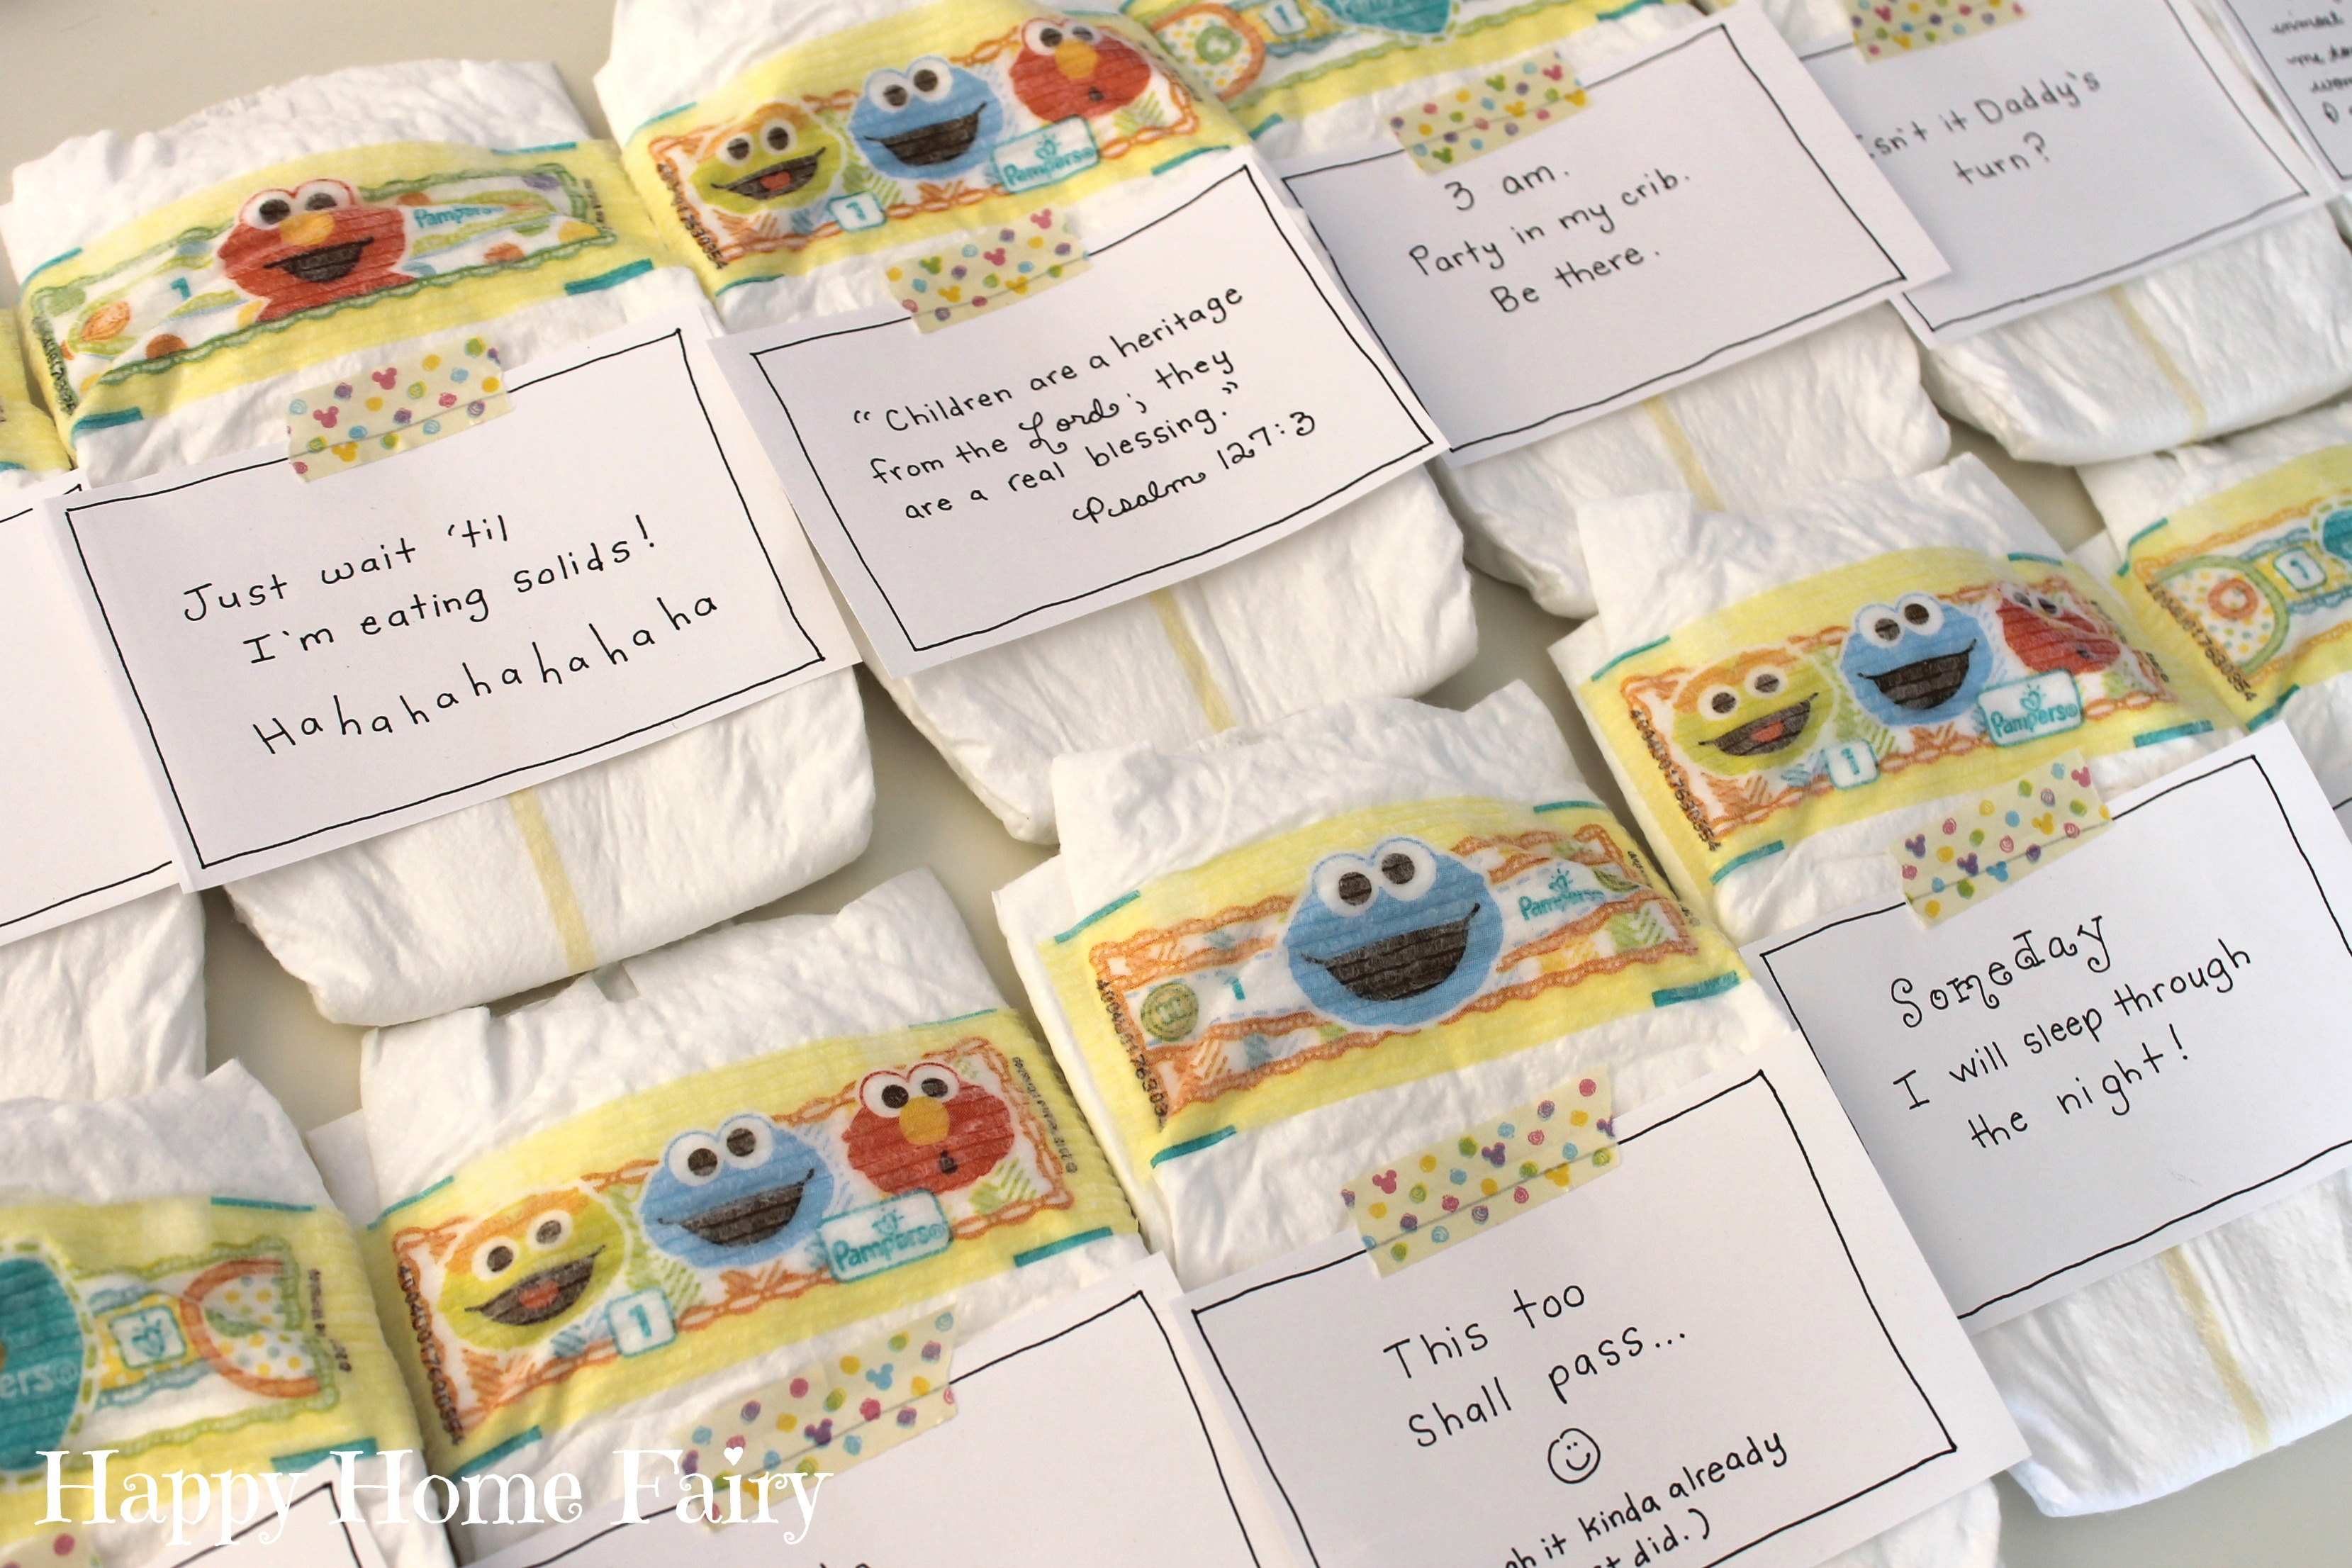 graphic regarding Late Night Diaper Messages Free Printable identified as Midnight Messages for Fresh Mommies - Absolutely free Printable! - Joyful